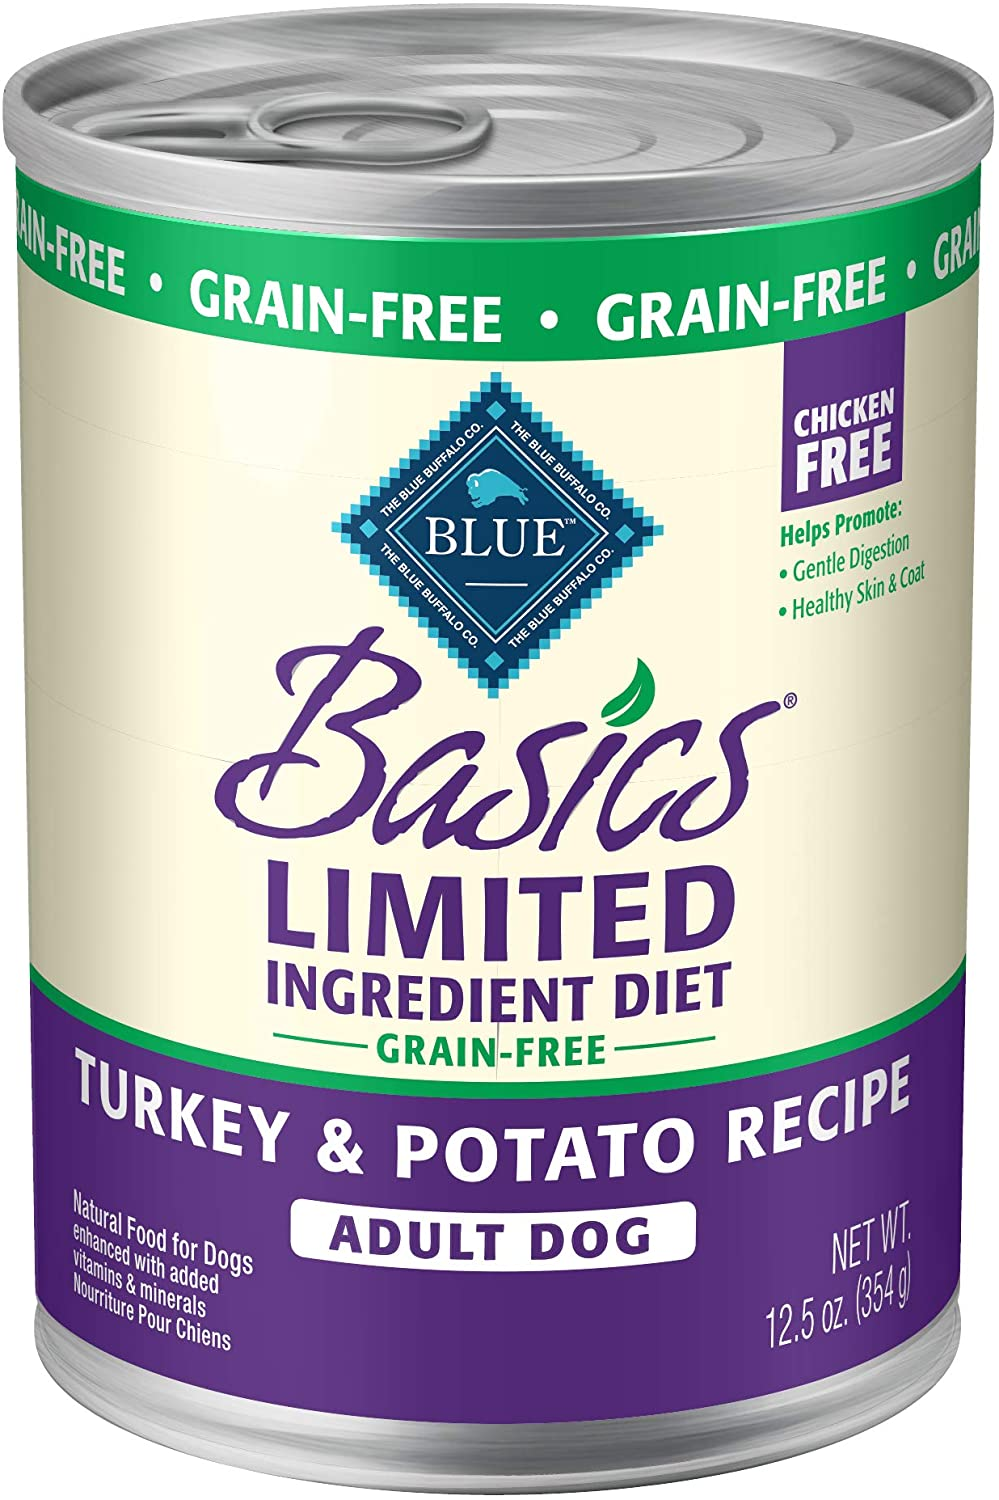 Blue Buffalo Basics Limited Ingredient Grain-Free Turkey & Potato Recipe